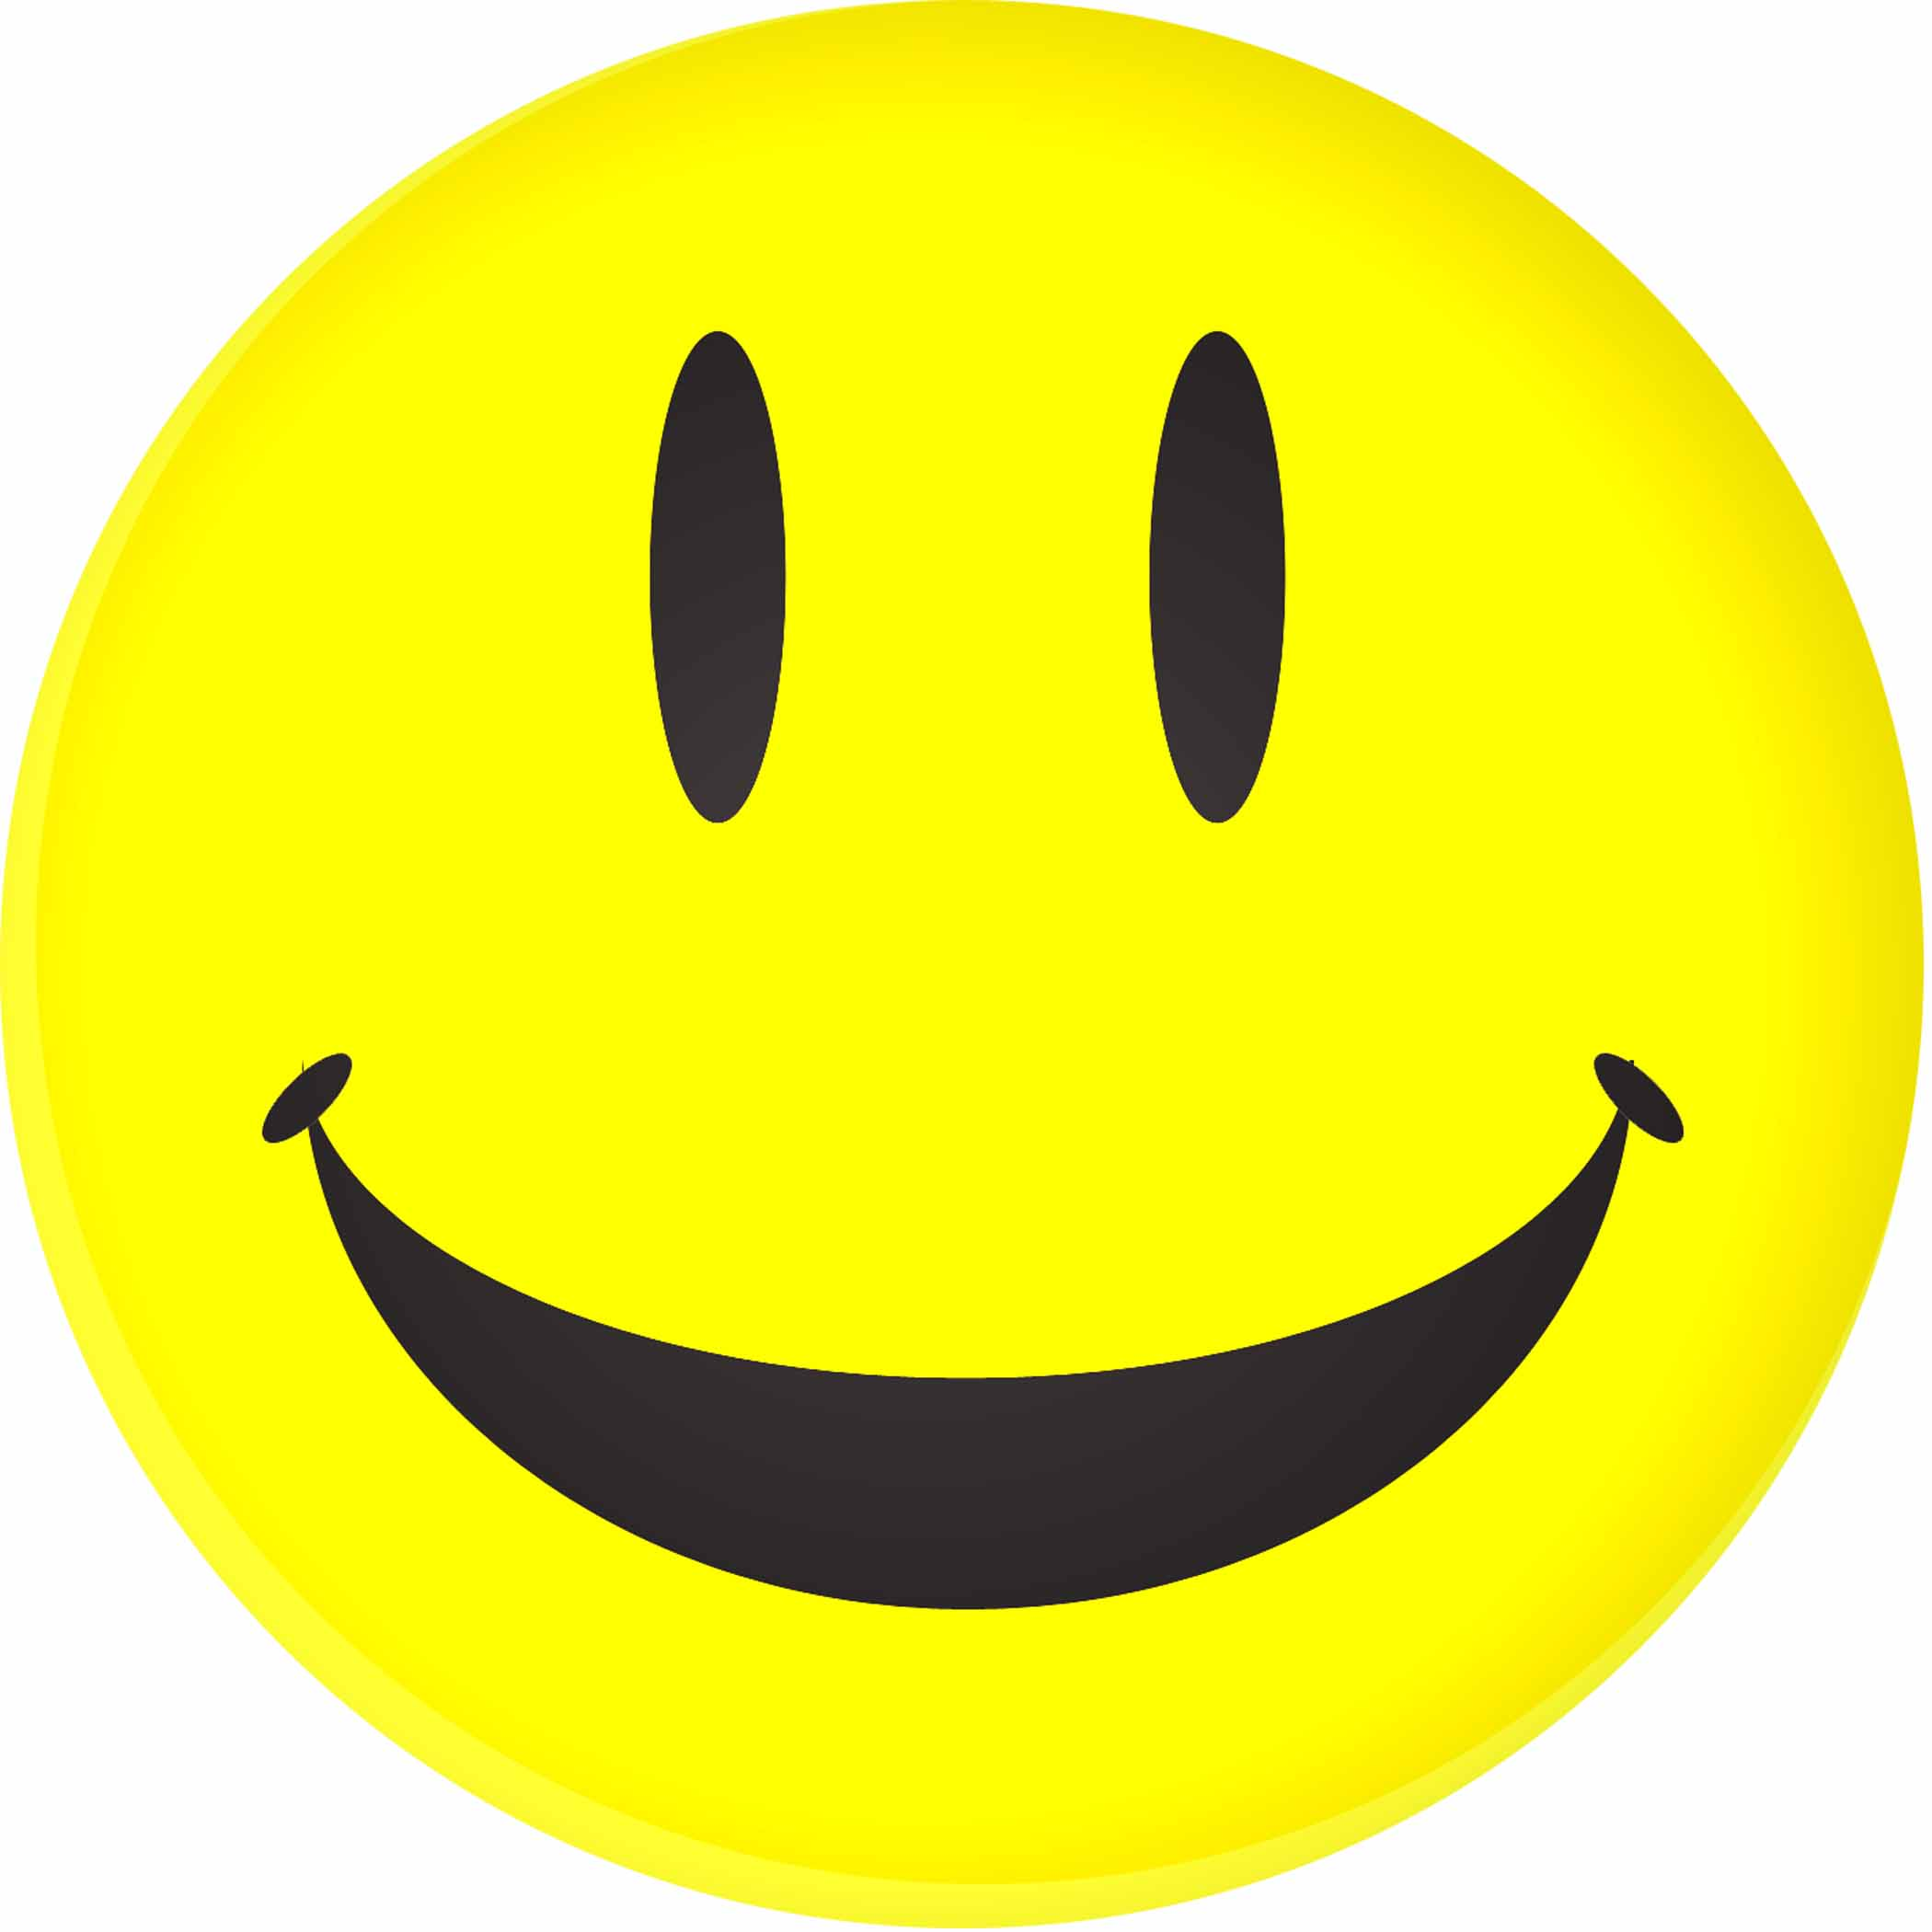 Moving Smiley Faces Clipart - Clipart Kid